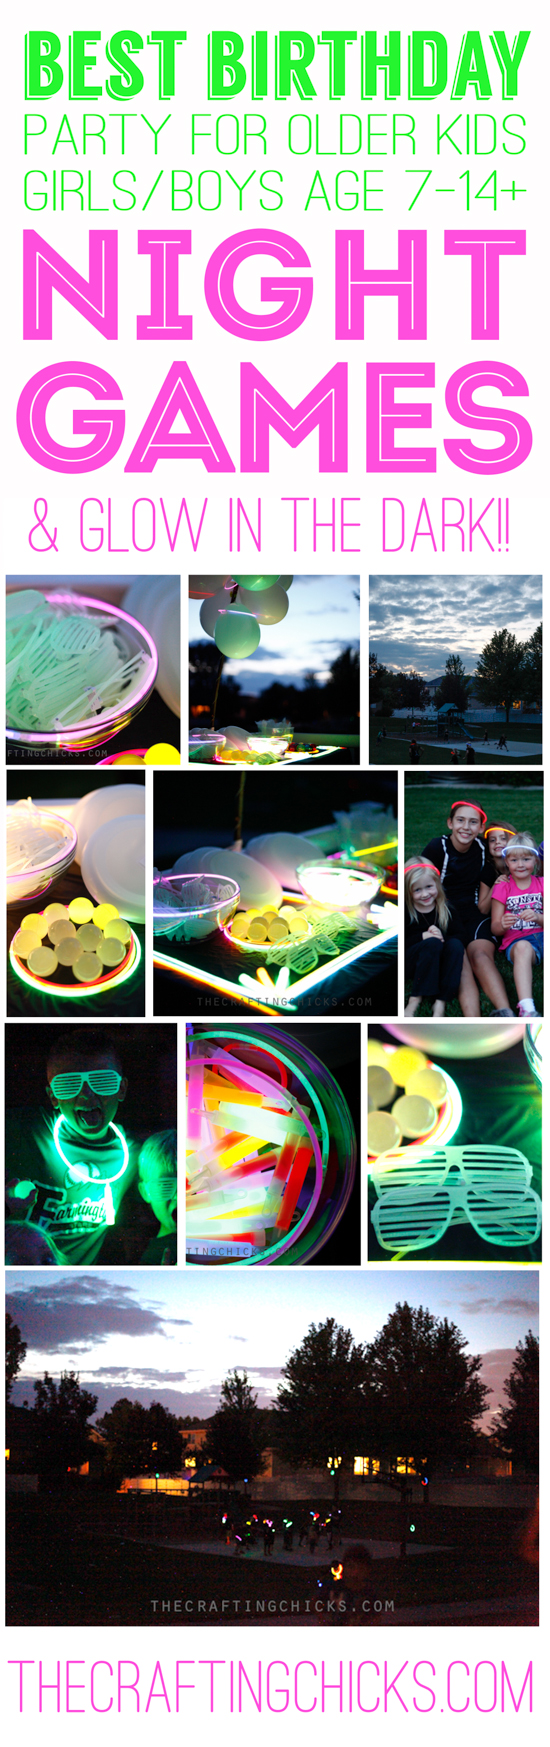 Night Games and Glow in the Dark Party from The Crafting Chicks